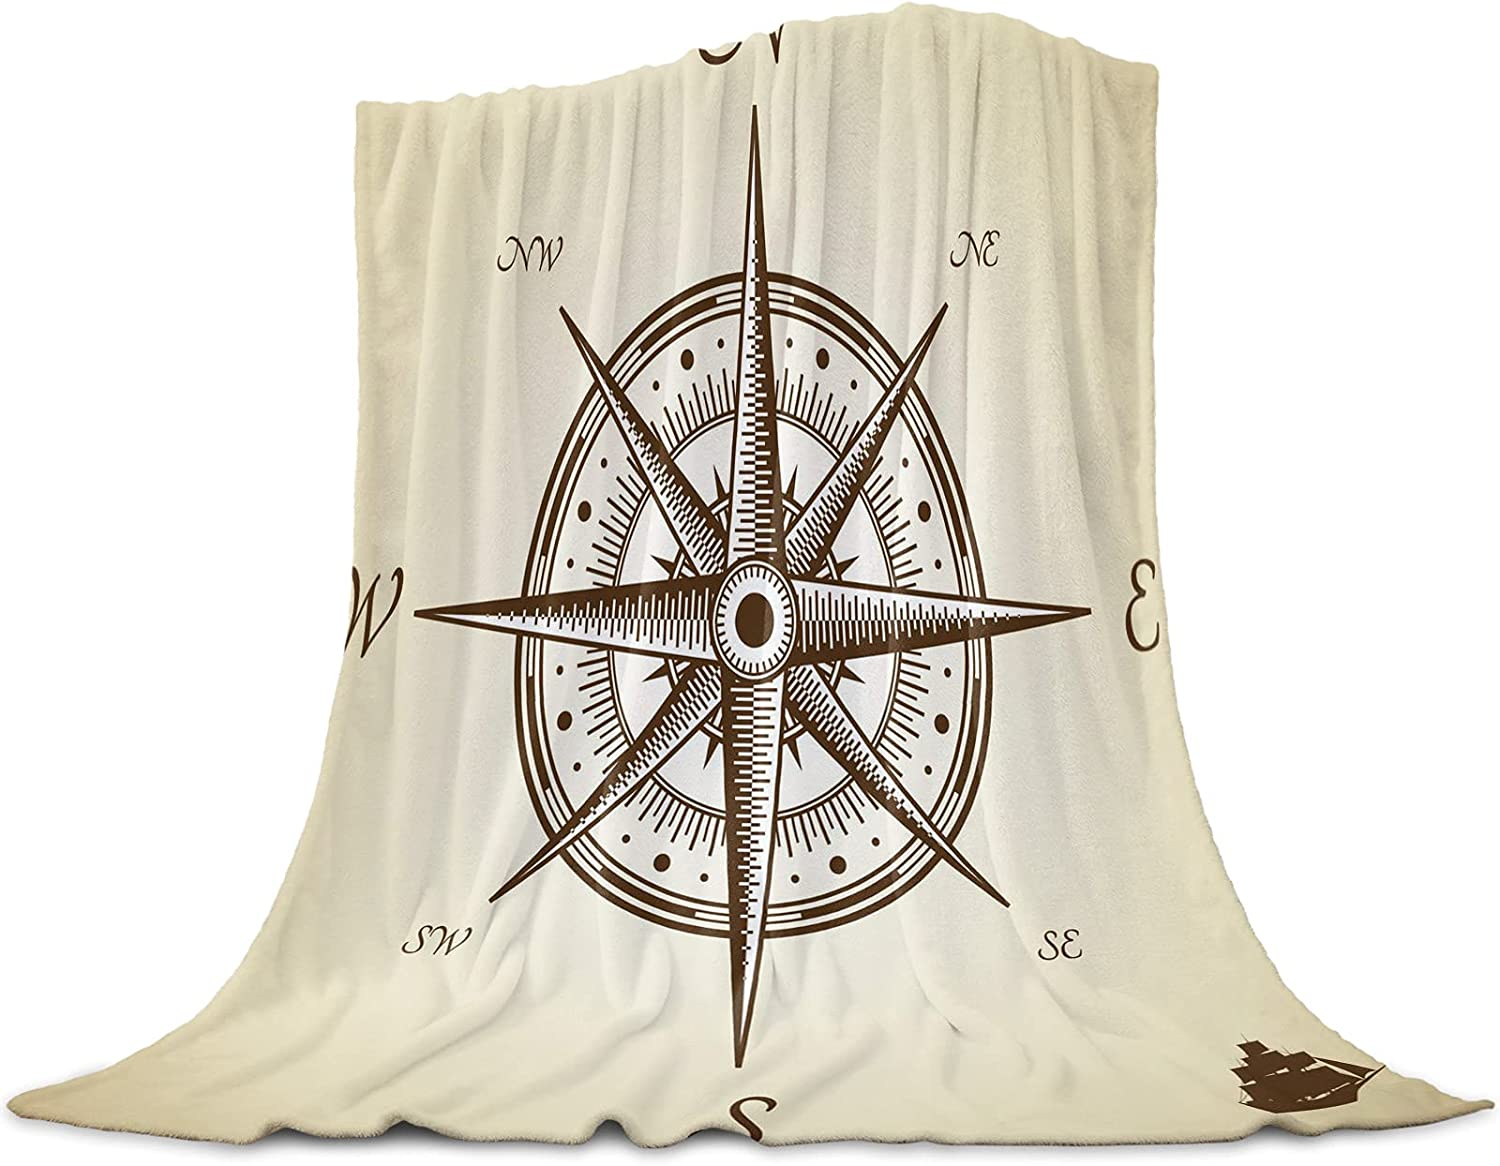 LEO BON Soft Warmer Throw Blankets Compasses for Be super welcome Season Product in R All